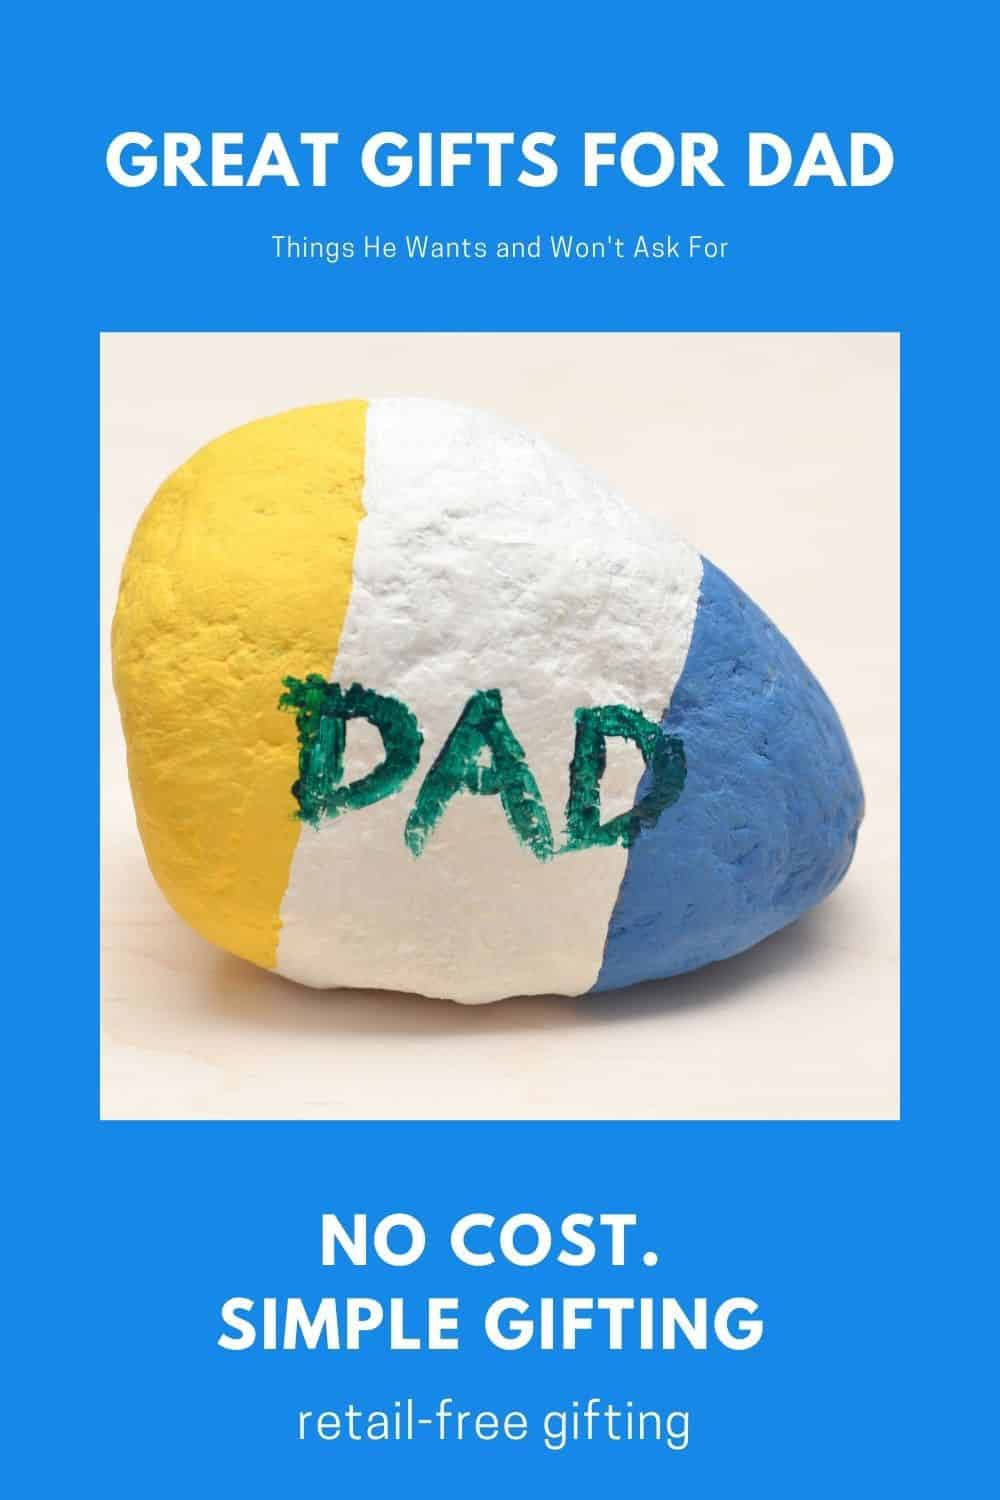 Gifts Dads Really Want and won't ask for A rock